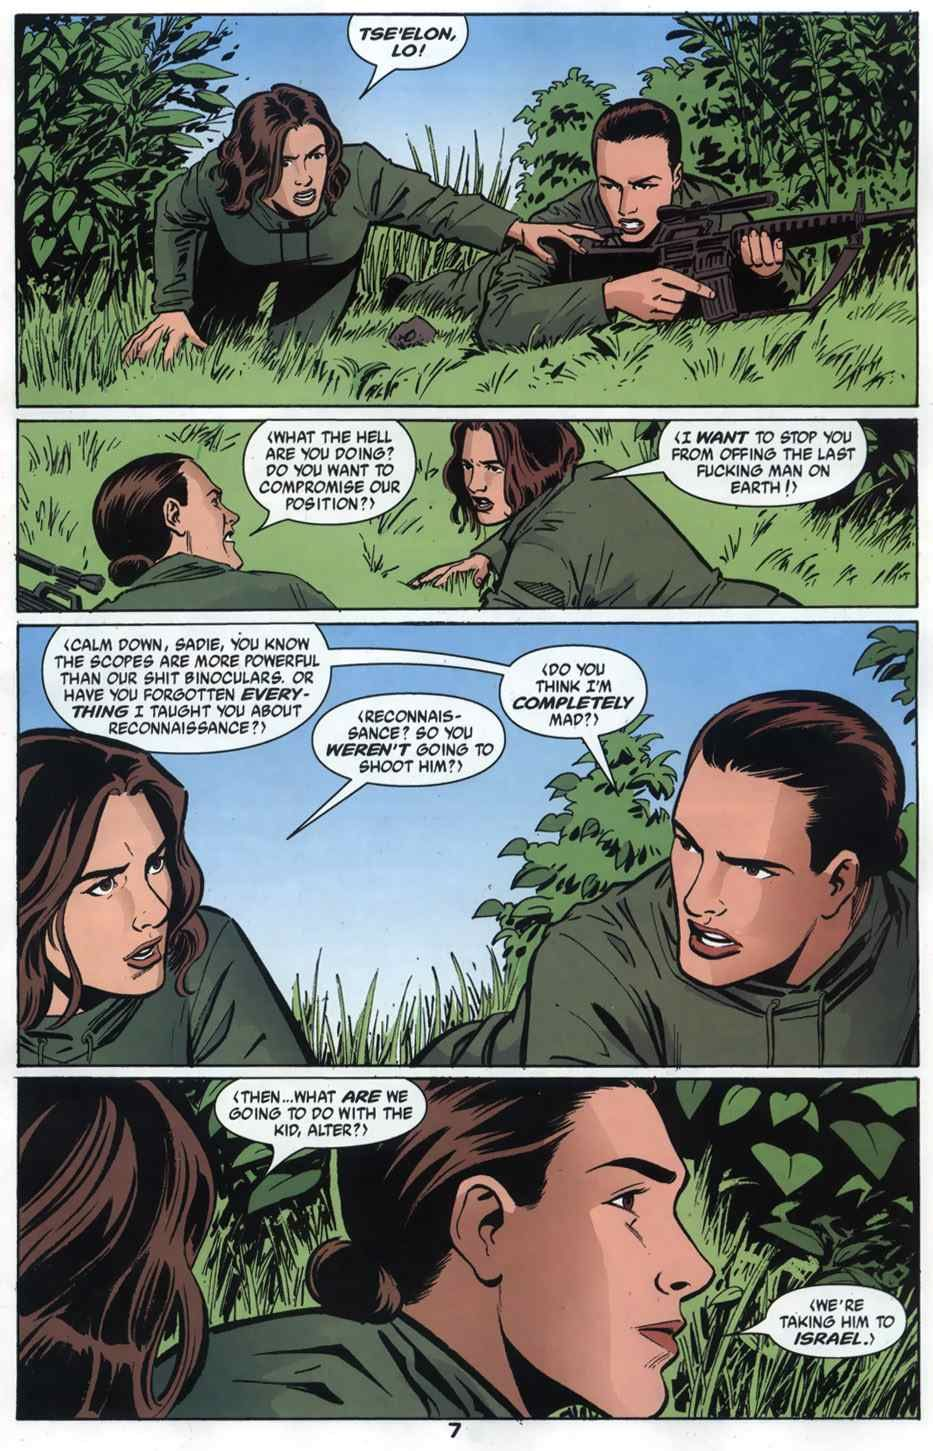 Read Comics Online Free - Y The Last Man - Chapter 013 - Page 8